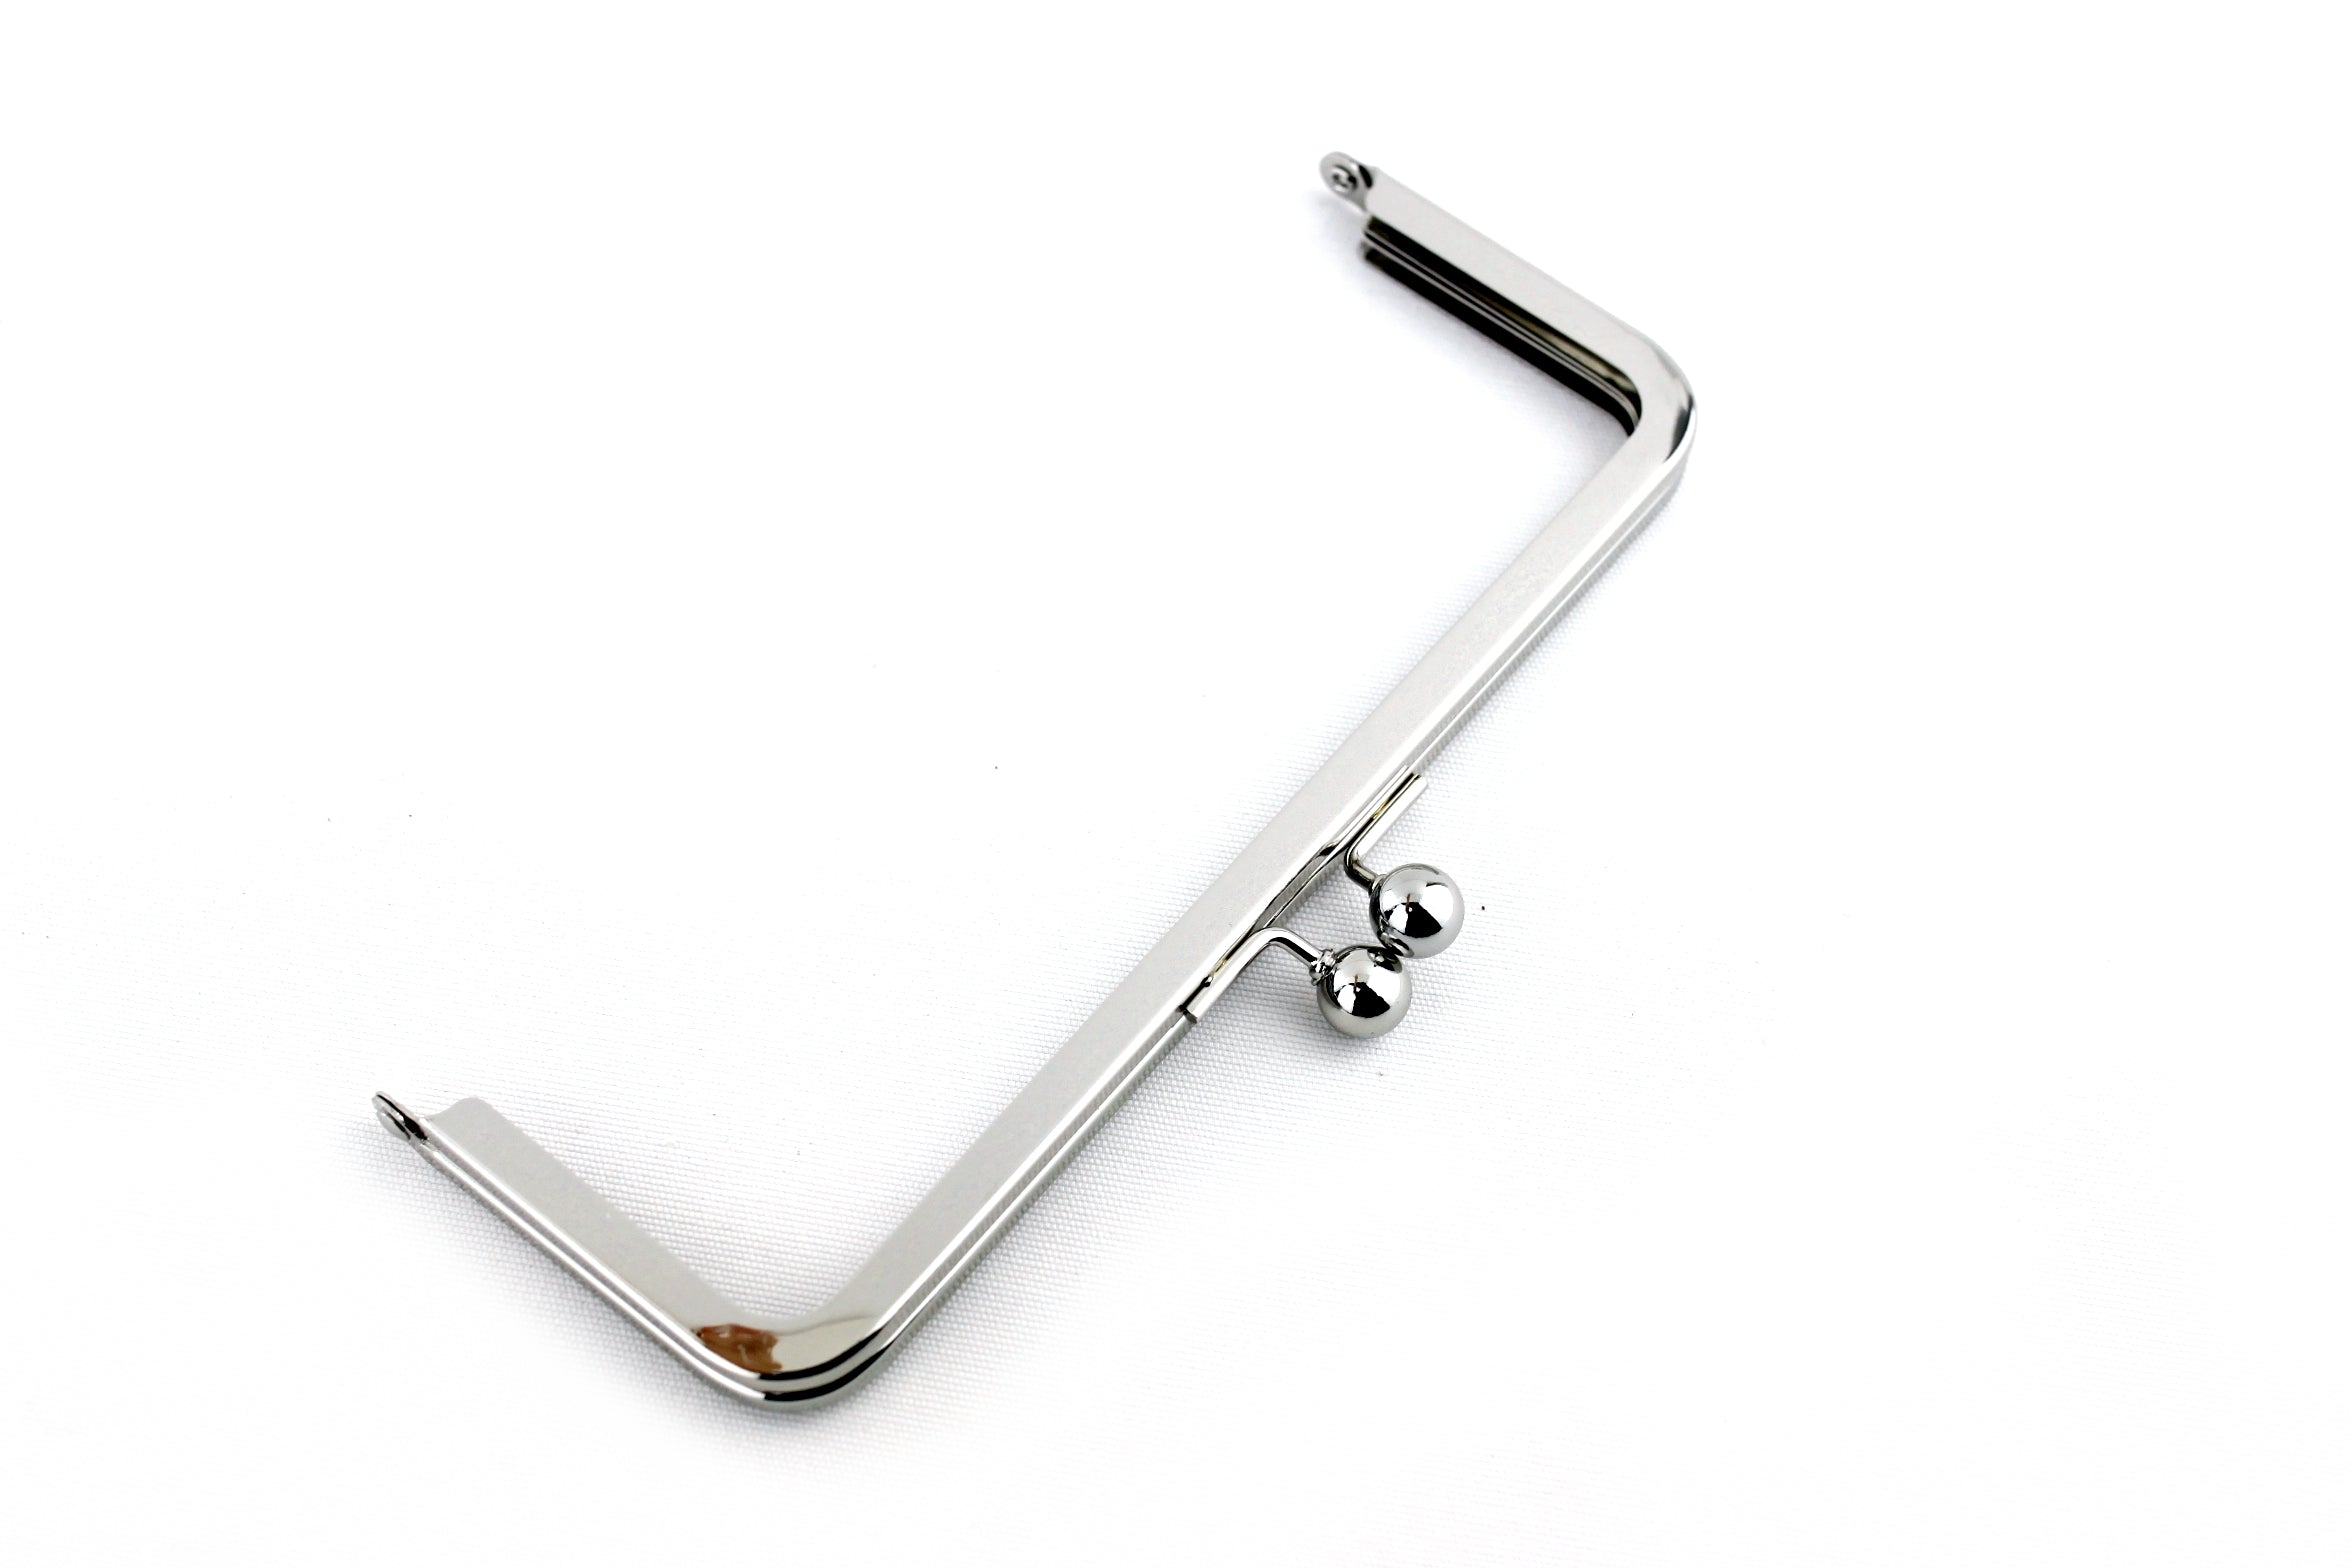 kiss lock  frame clip frame purse clasp clutch metal purse frame with pearl bead with handle 4 color 20cm 8 inch